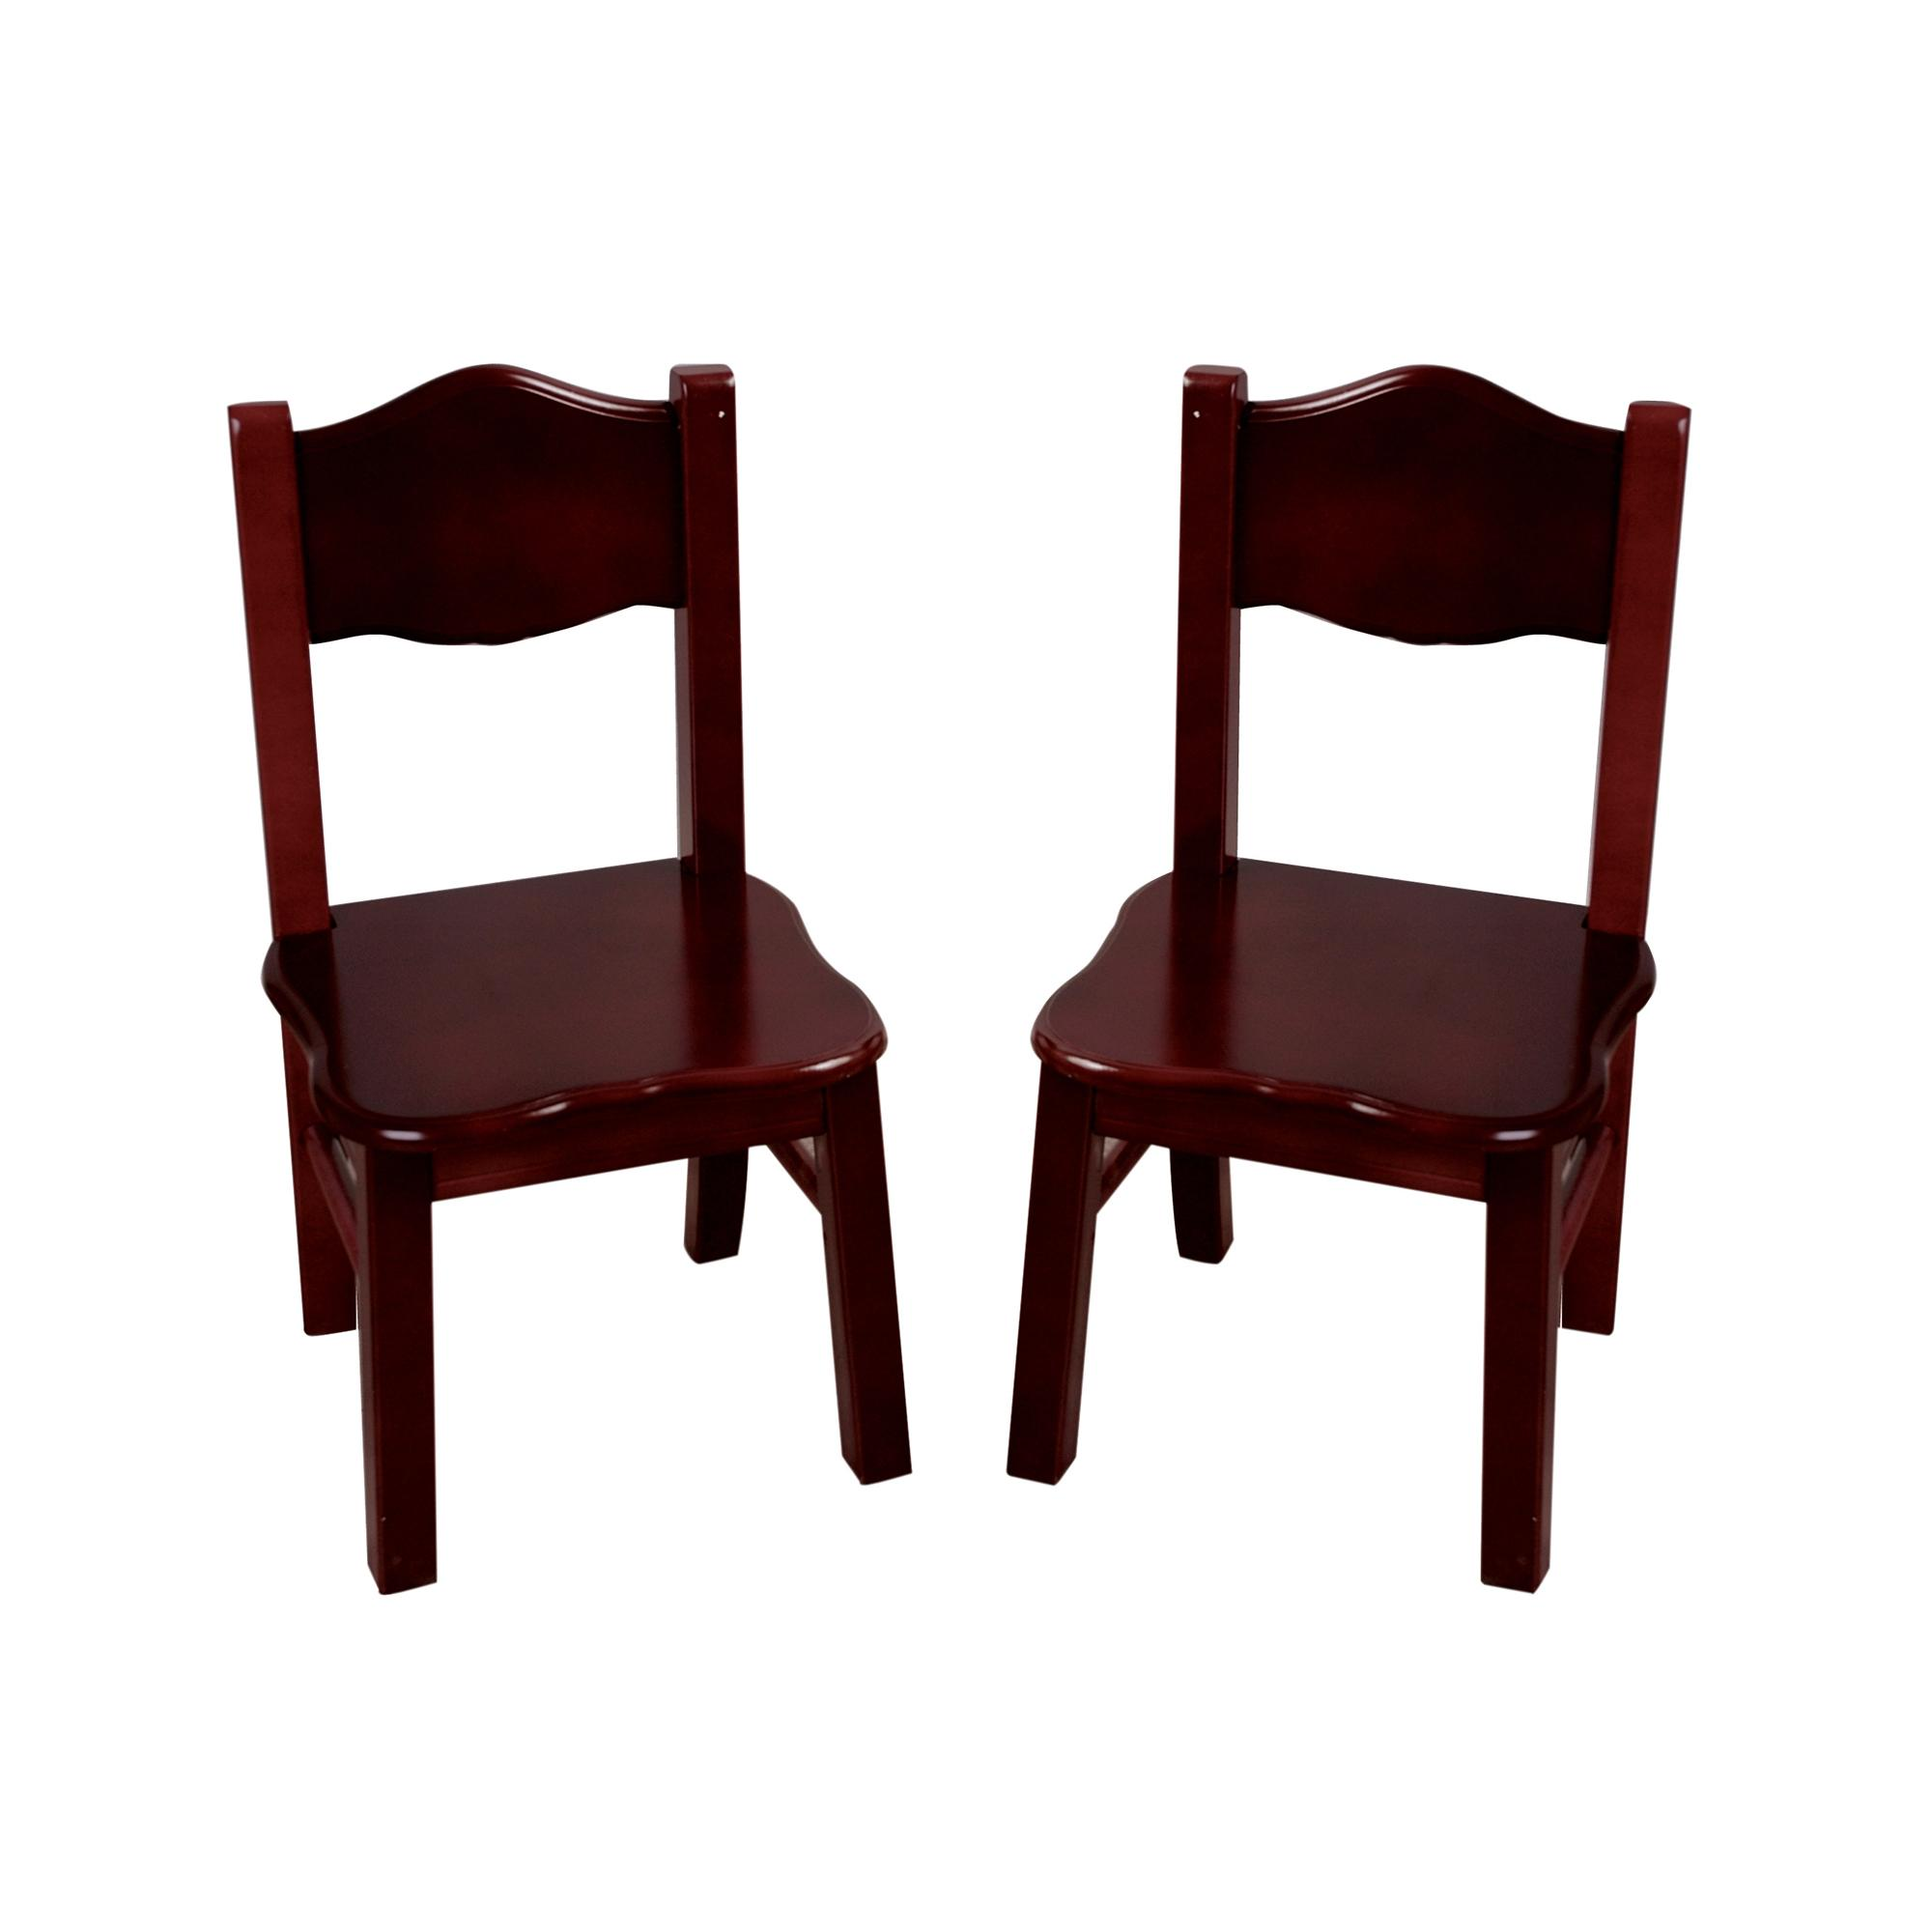 Guidecraft Classic Chairs Set of 2 by OJ merce G $64 99